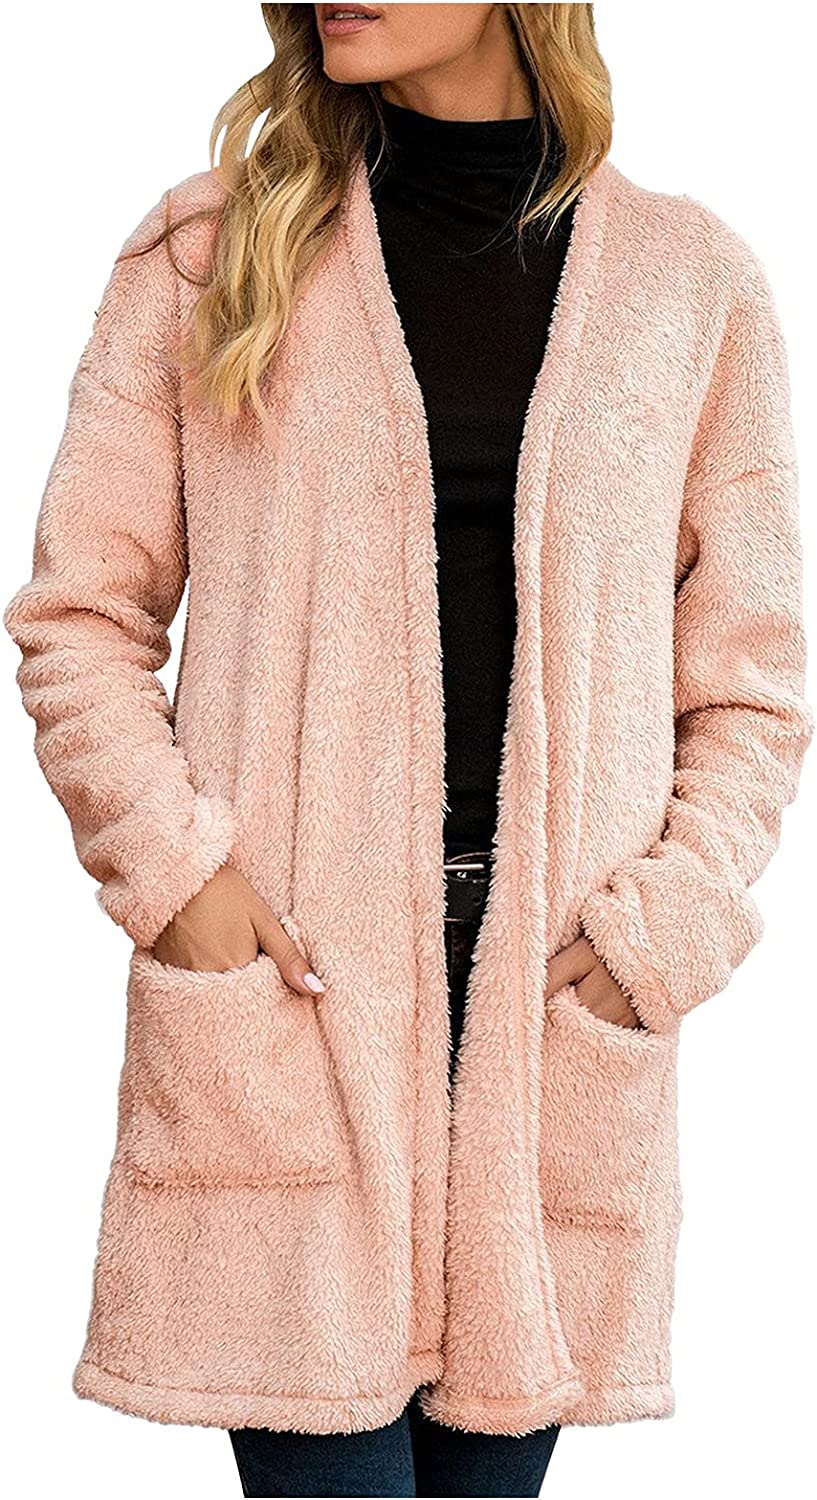 Long Open Front Cardigans for Women Long Sleeve Loose Lightweight Sweaters Outwear with Pockets Fashion Casual Coat